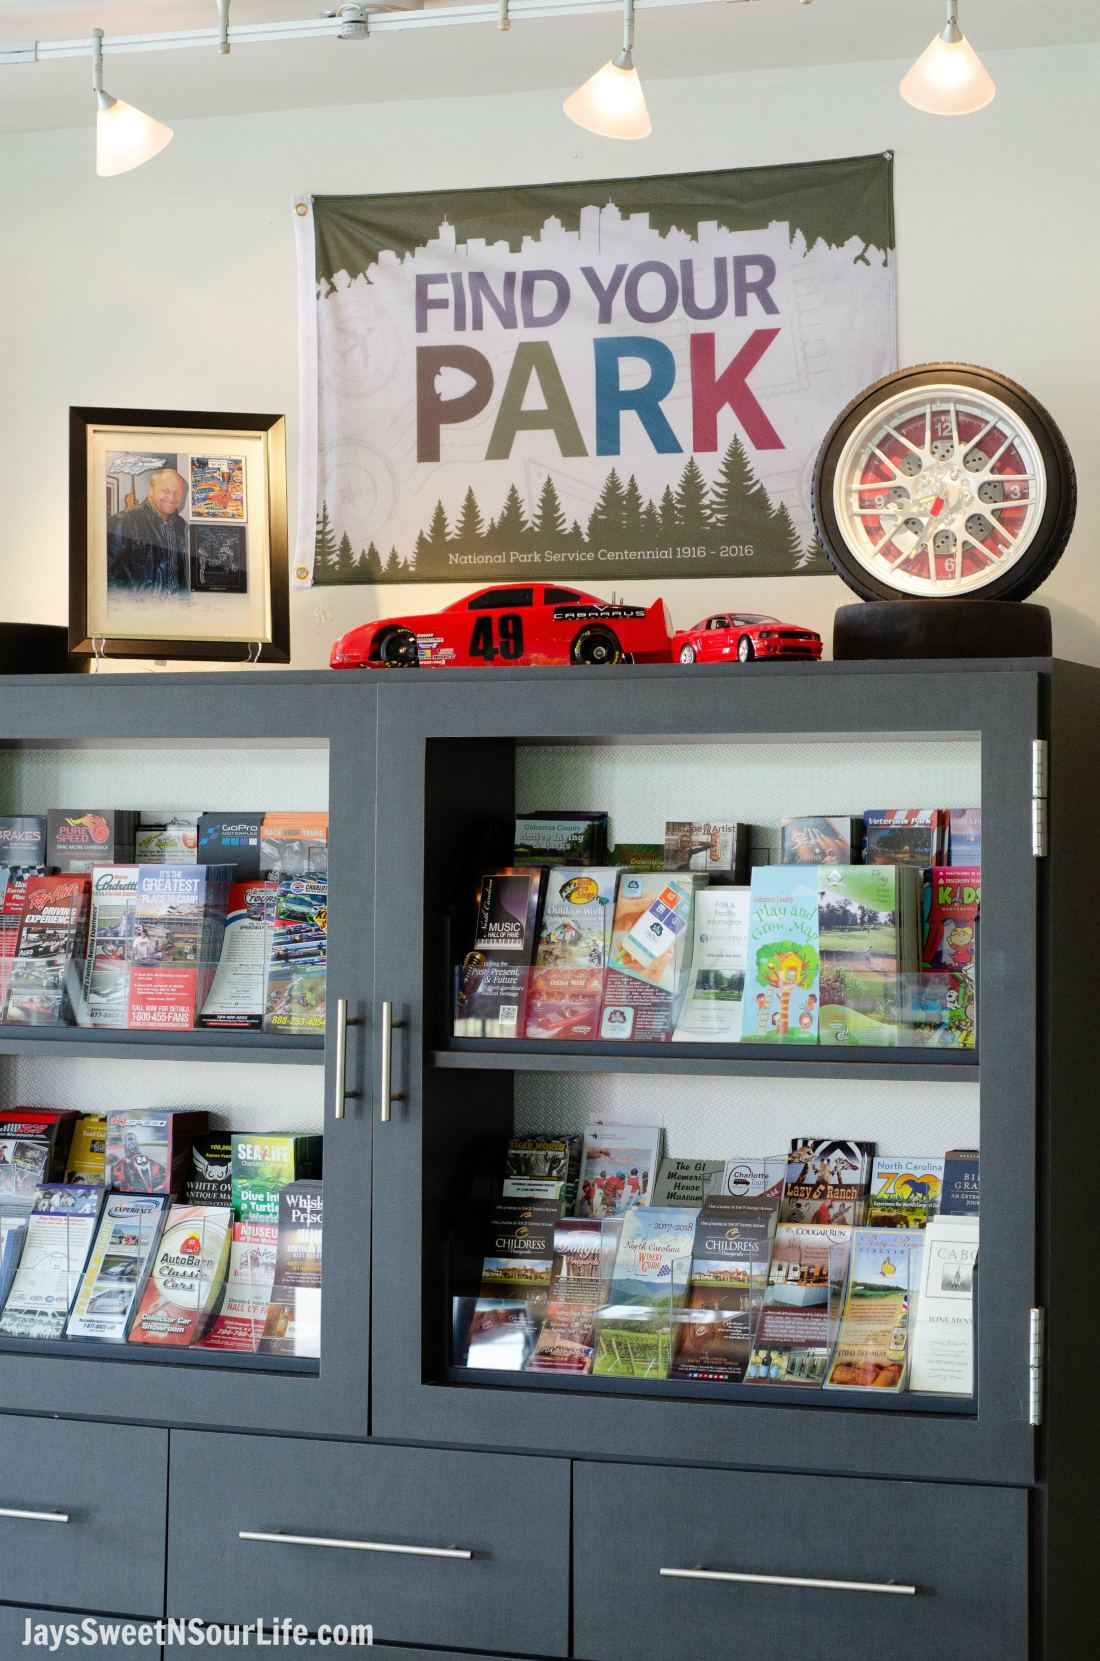 Visit Cabarrus County Vistor Center Find Your Park Display.A Large Families Adventure Guide To Cabarrus County - North Carolina - via JaysSweetNSourLife.com.